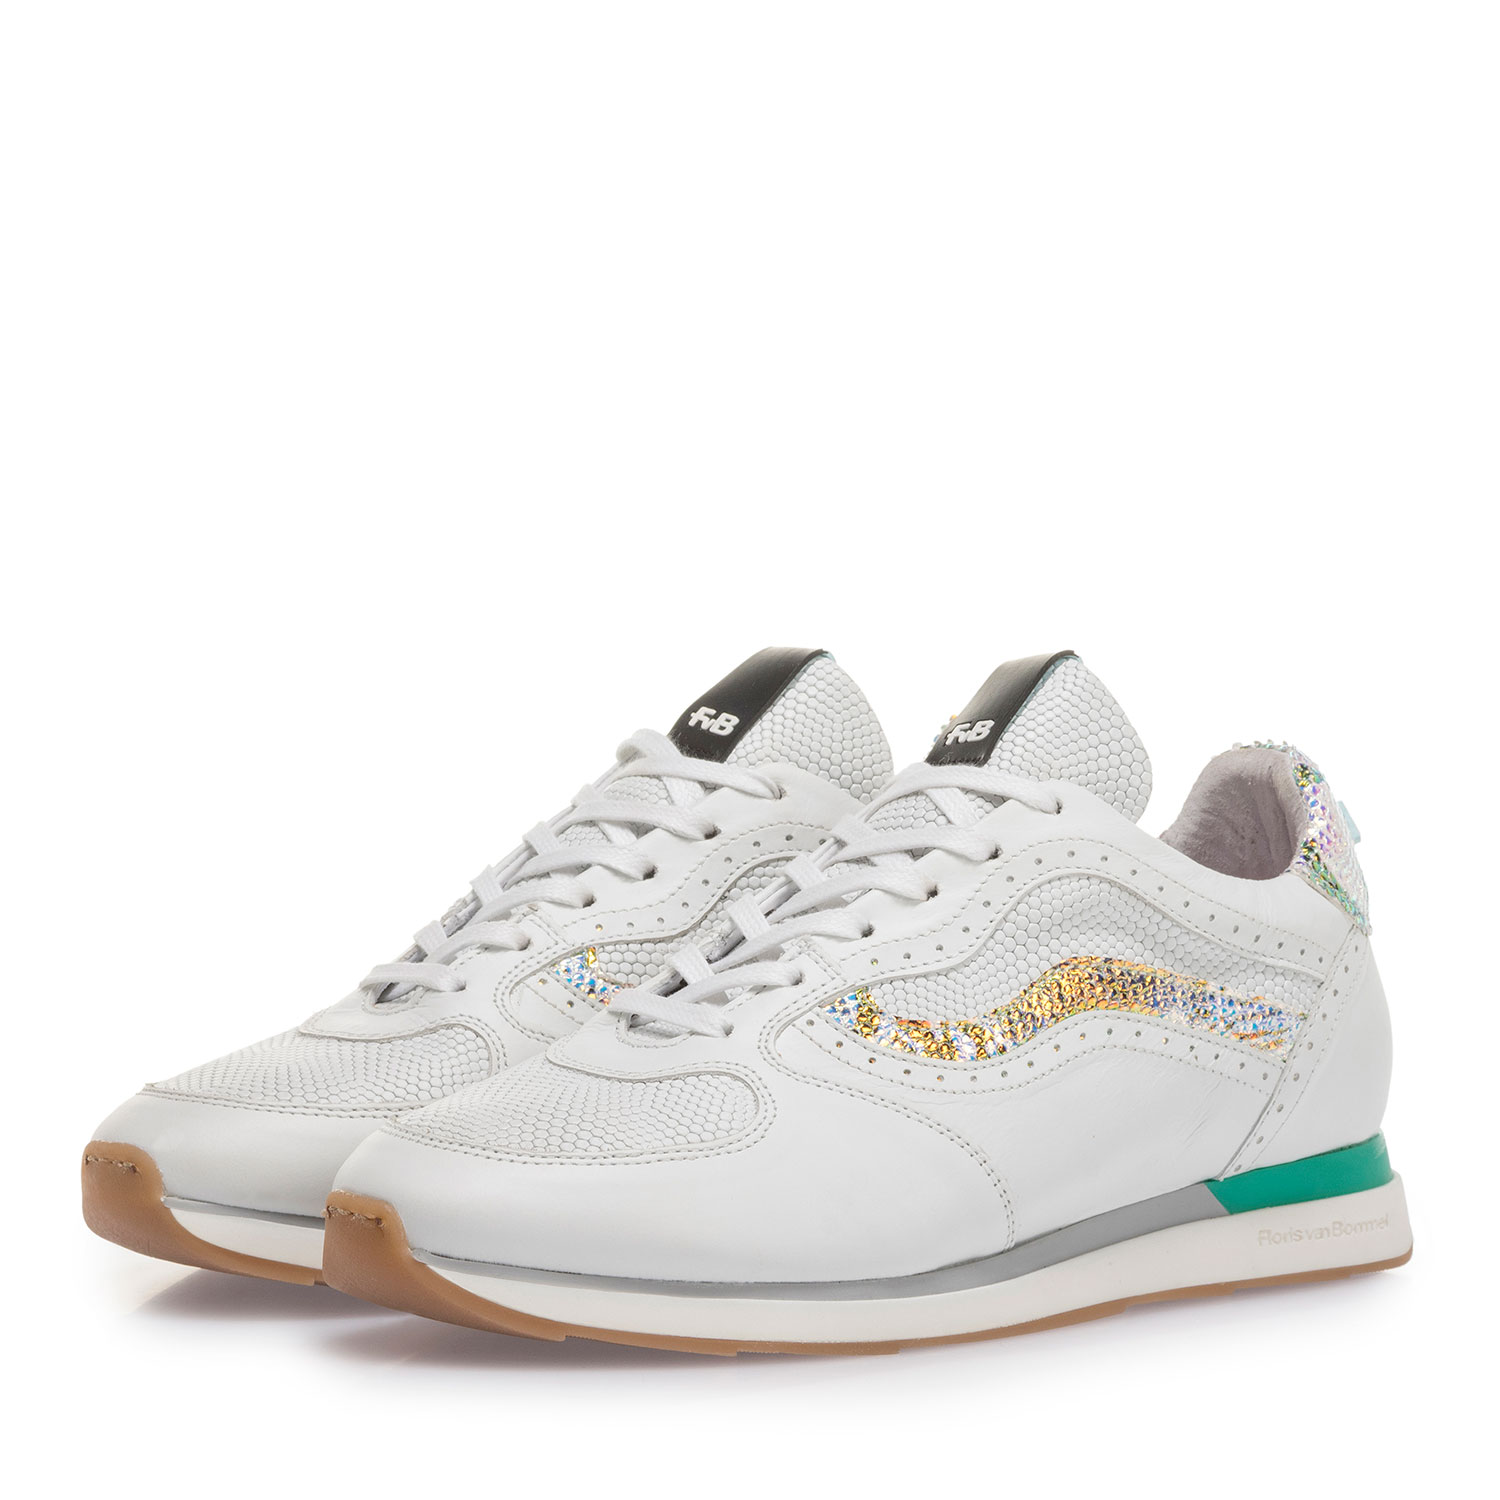 85279/10 - White leather sneaker with metallic details